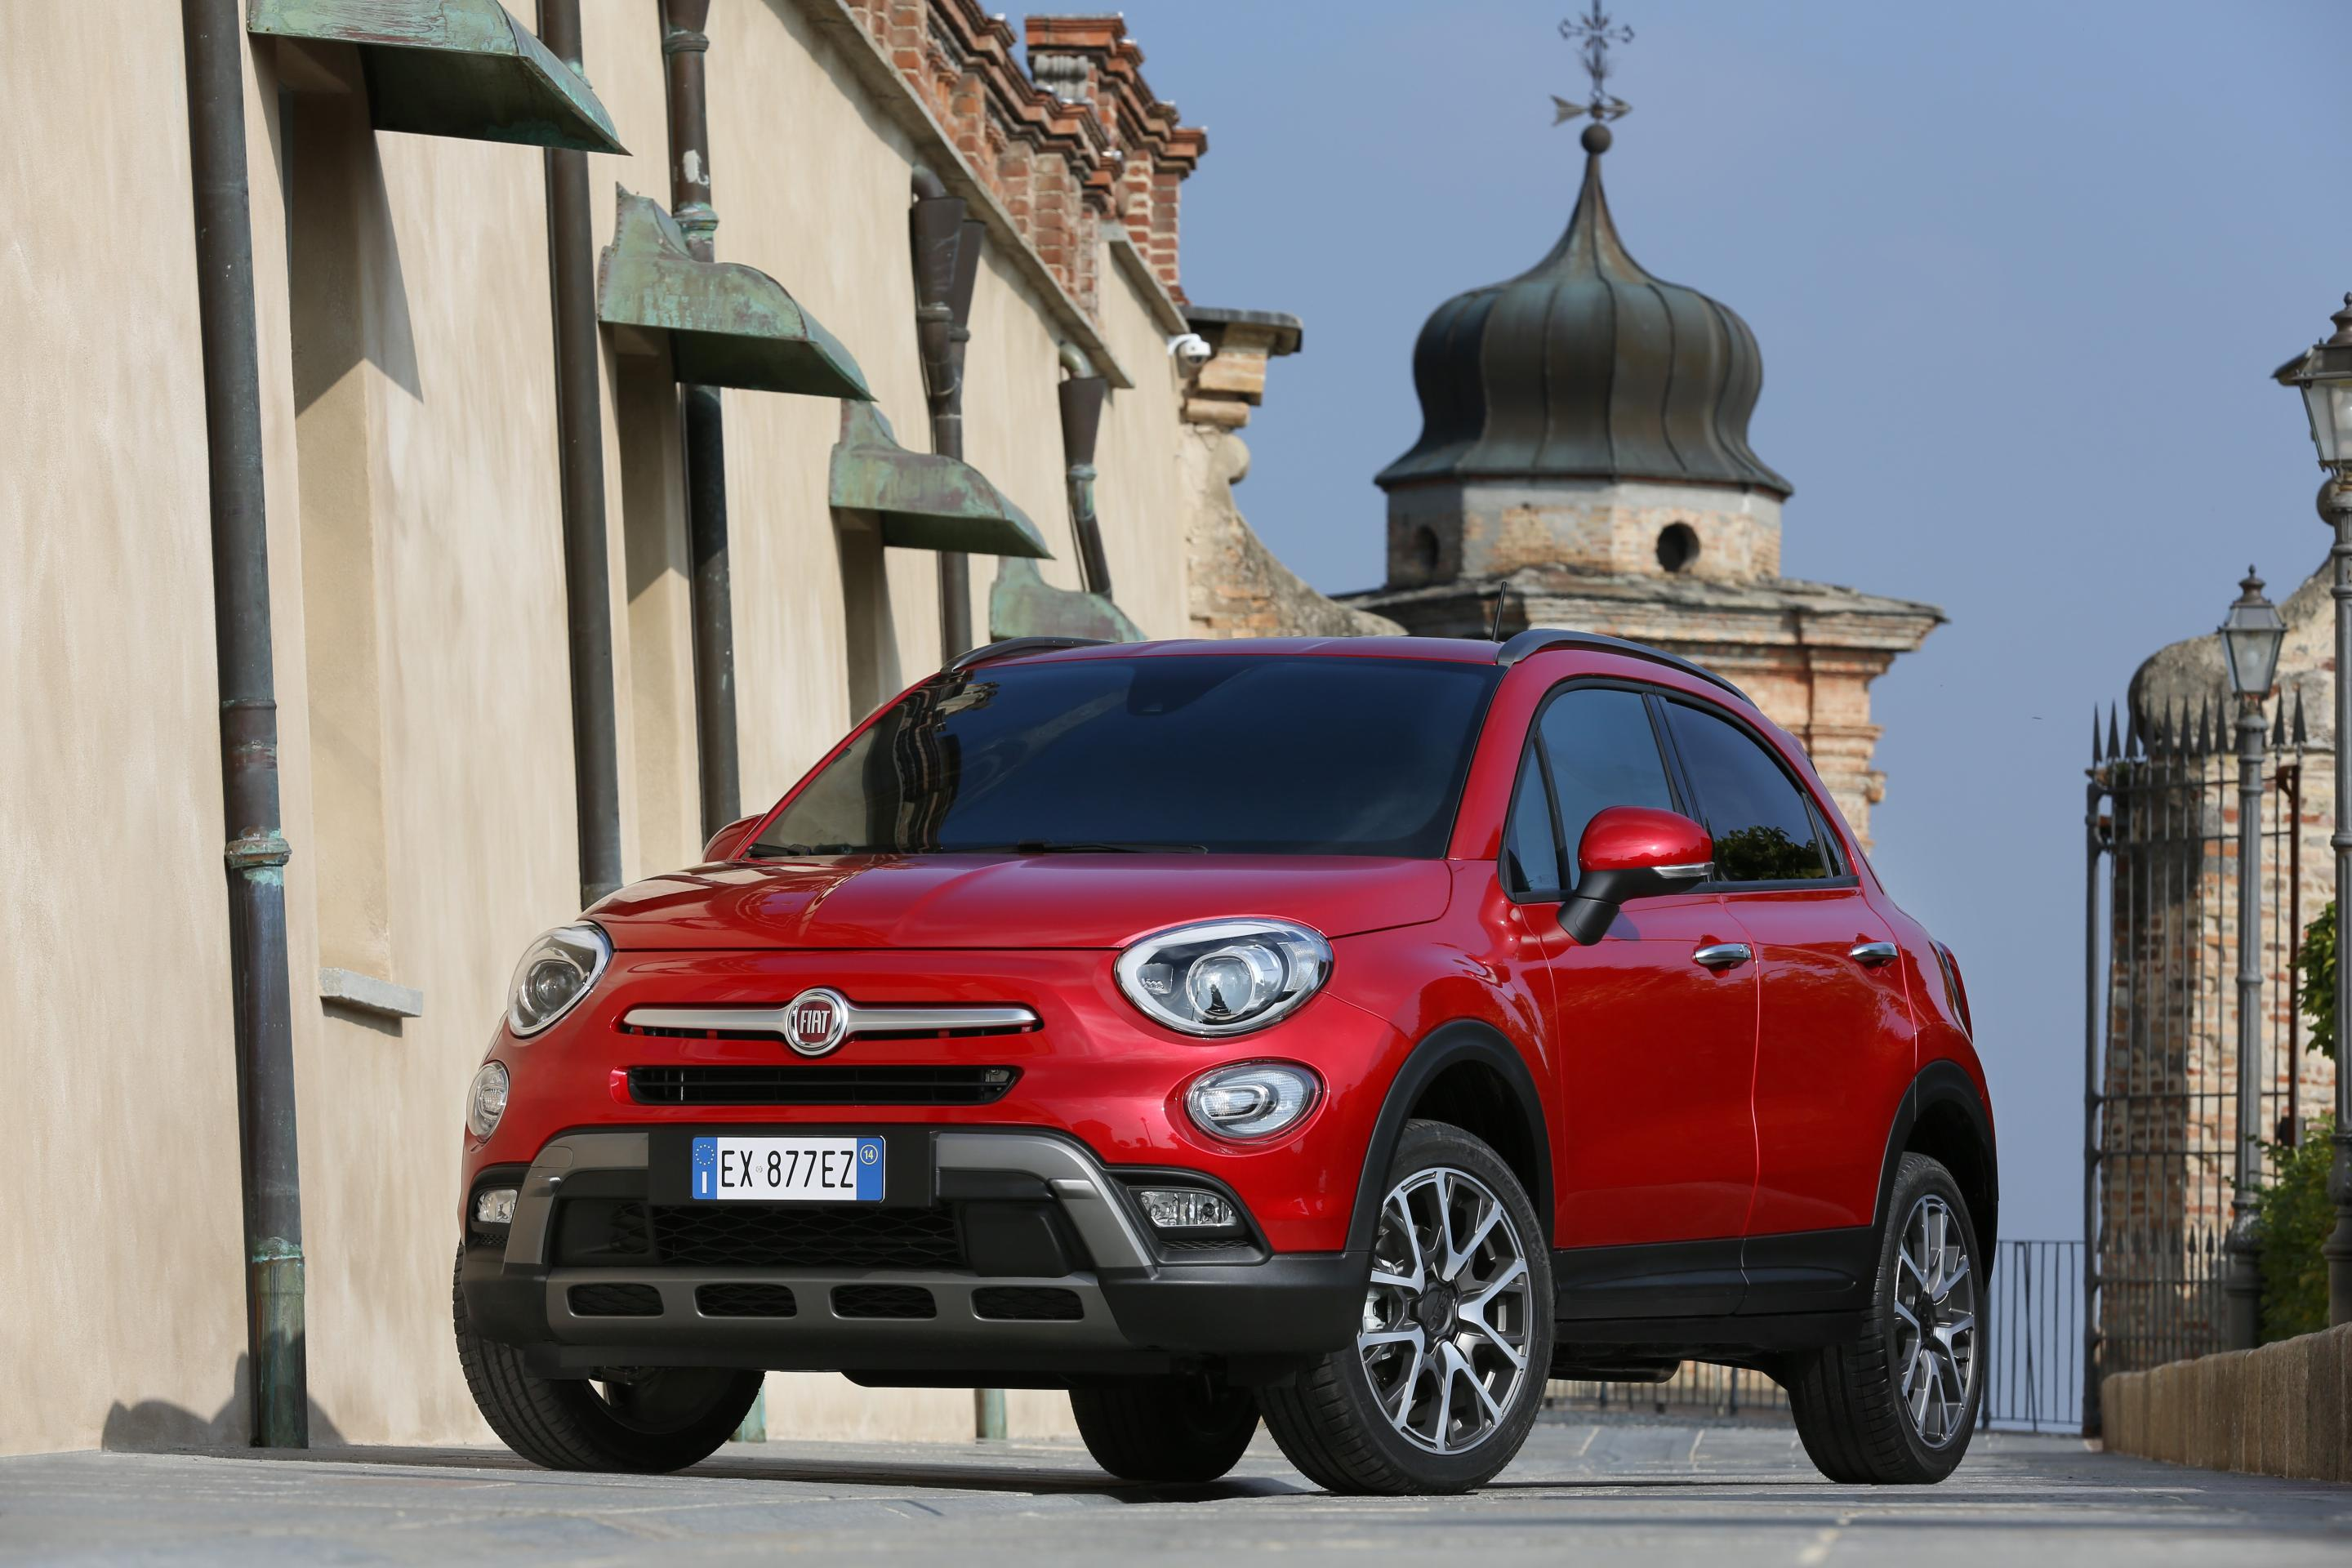 Fiat 500X parked in a town